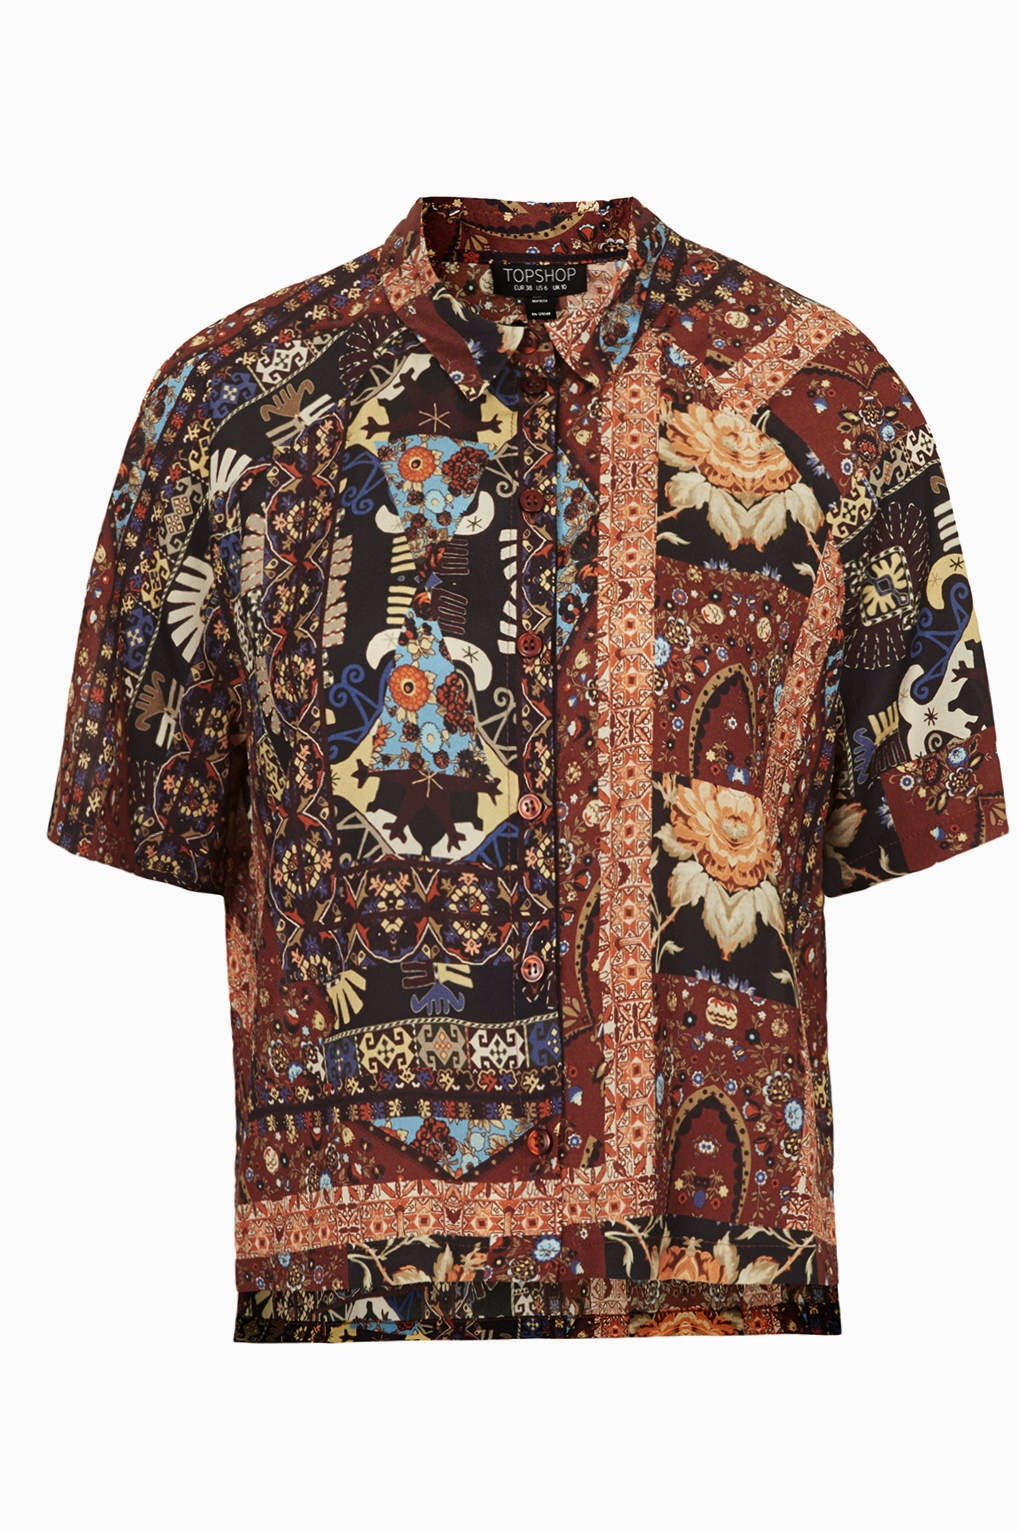 moroccan style shirt